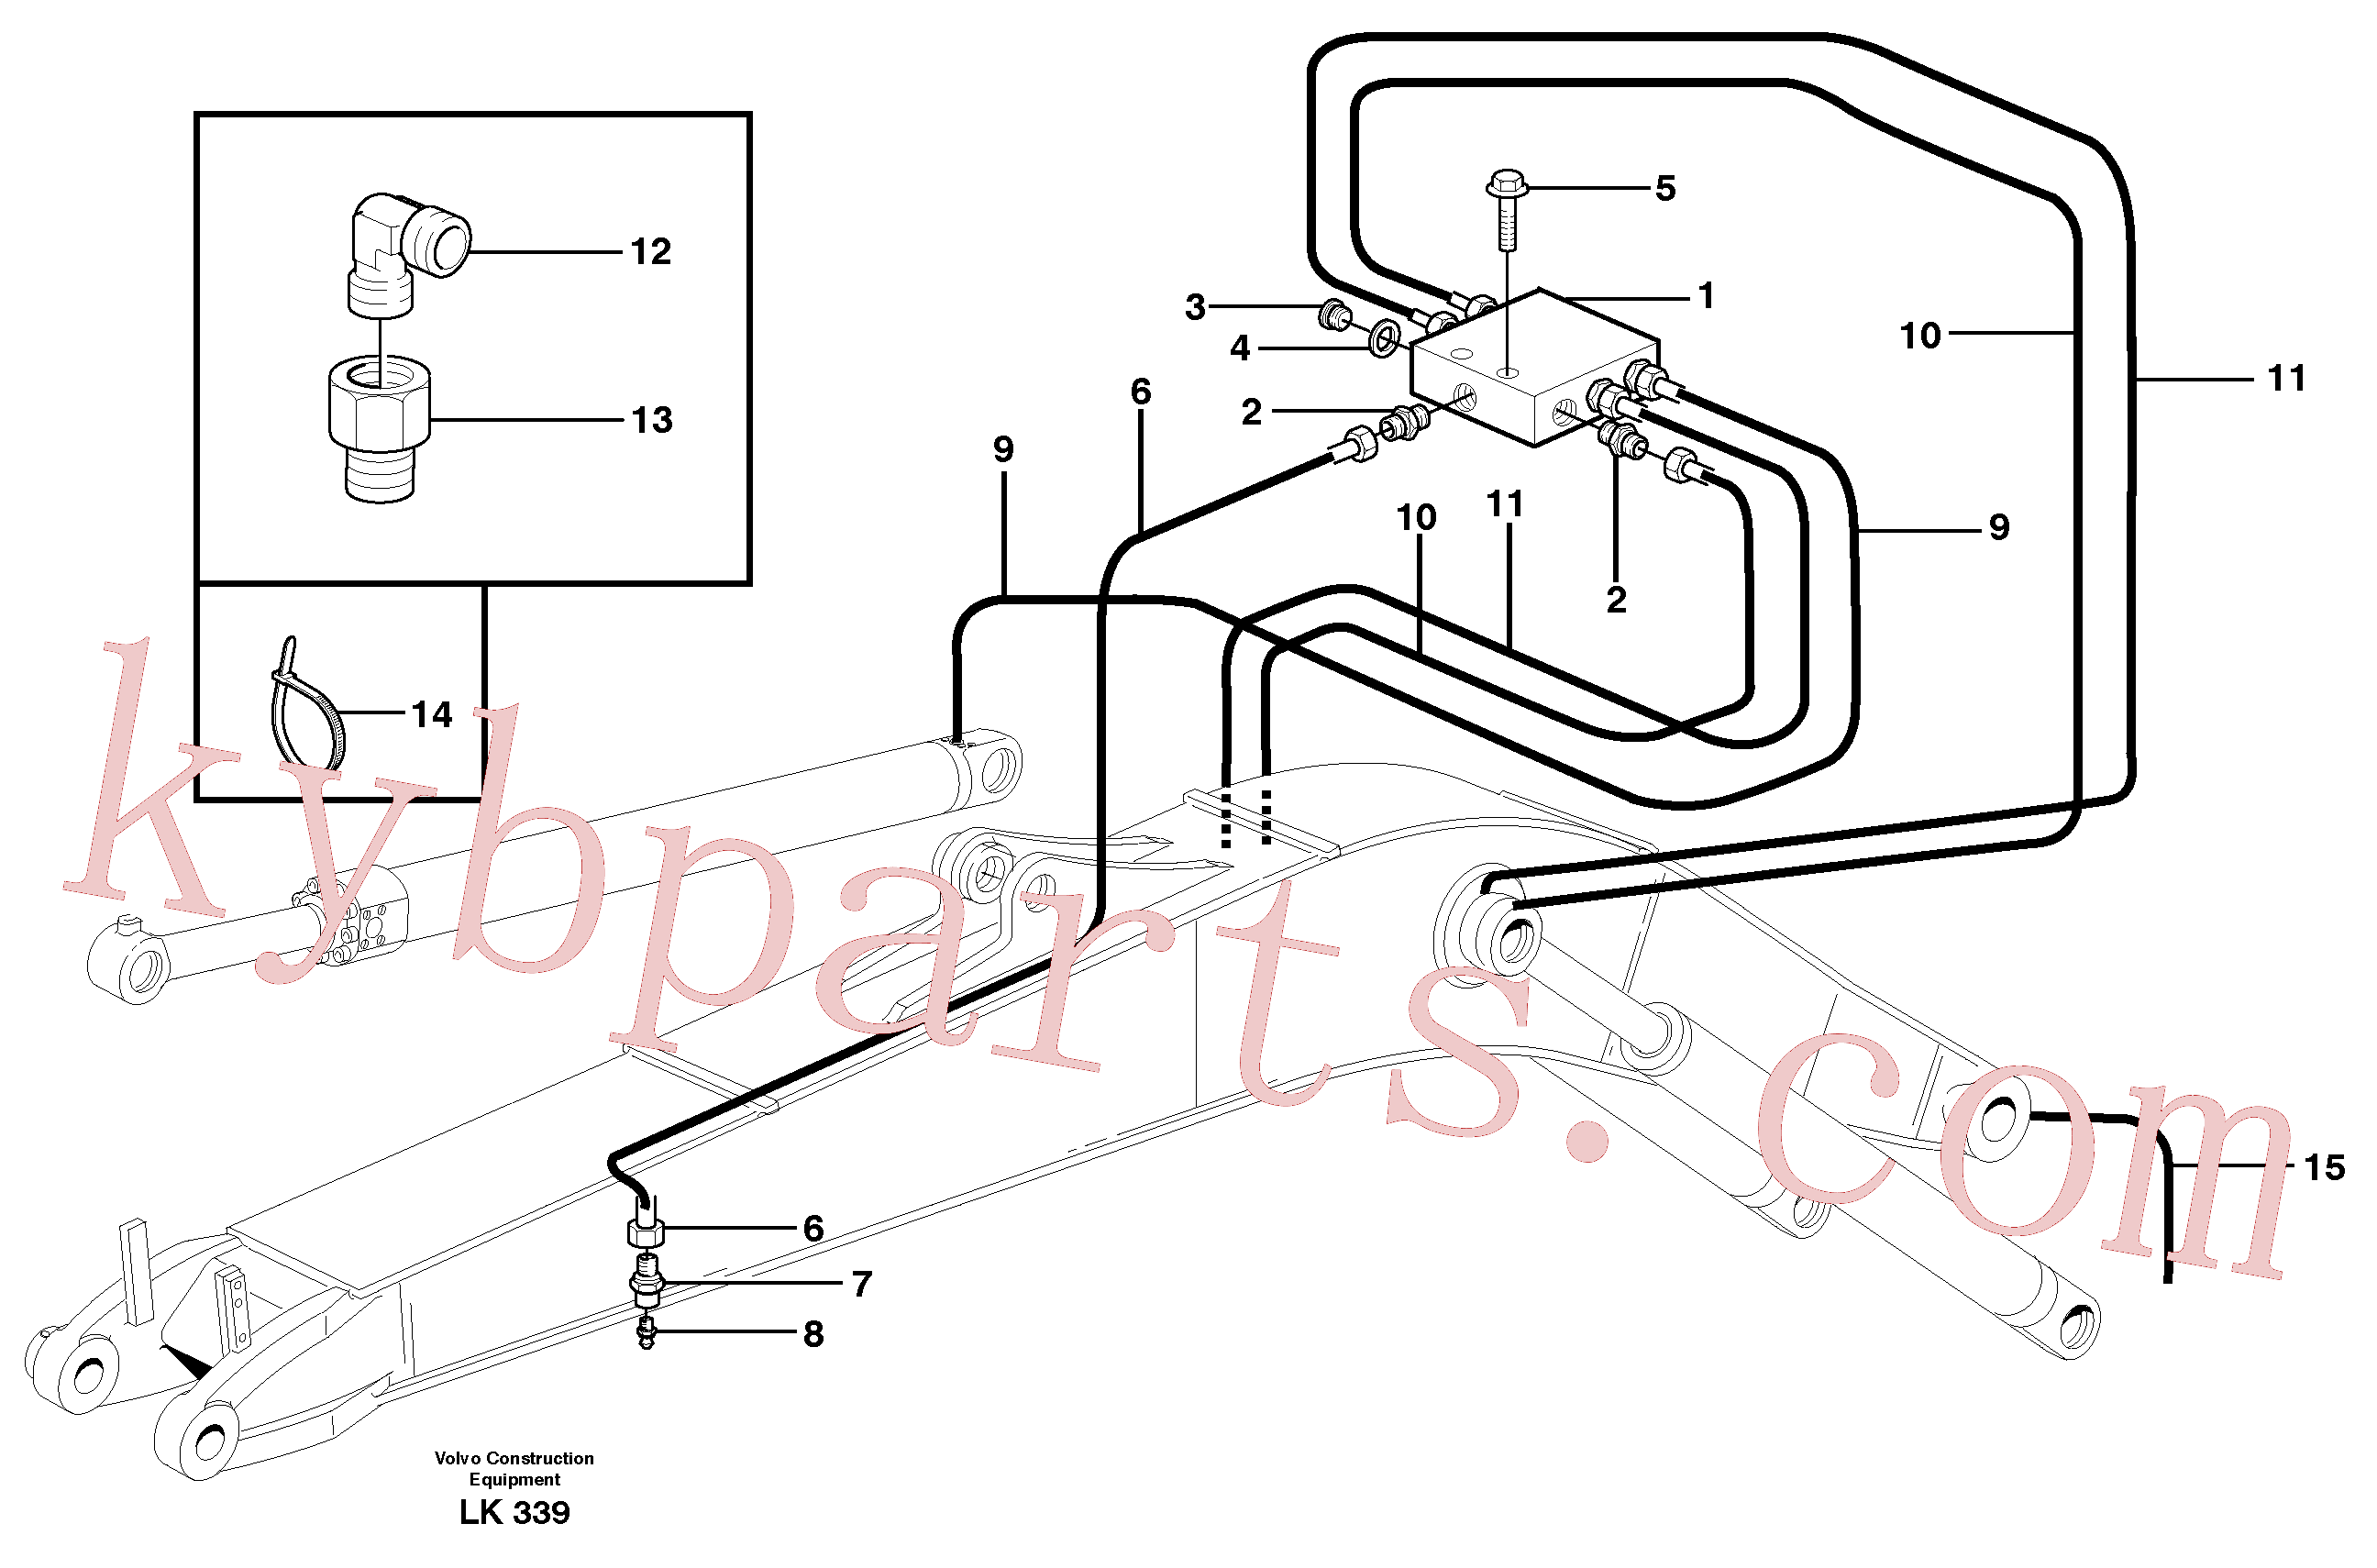 VOE14370347 for Volvo Central lubrication, mono boom(LK339 assembly)